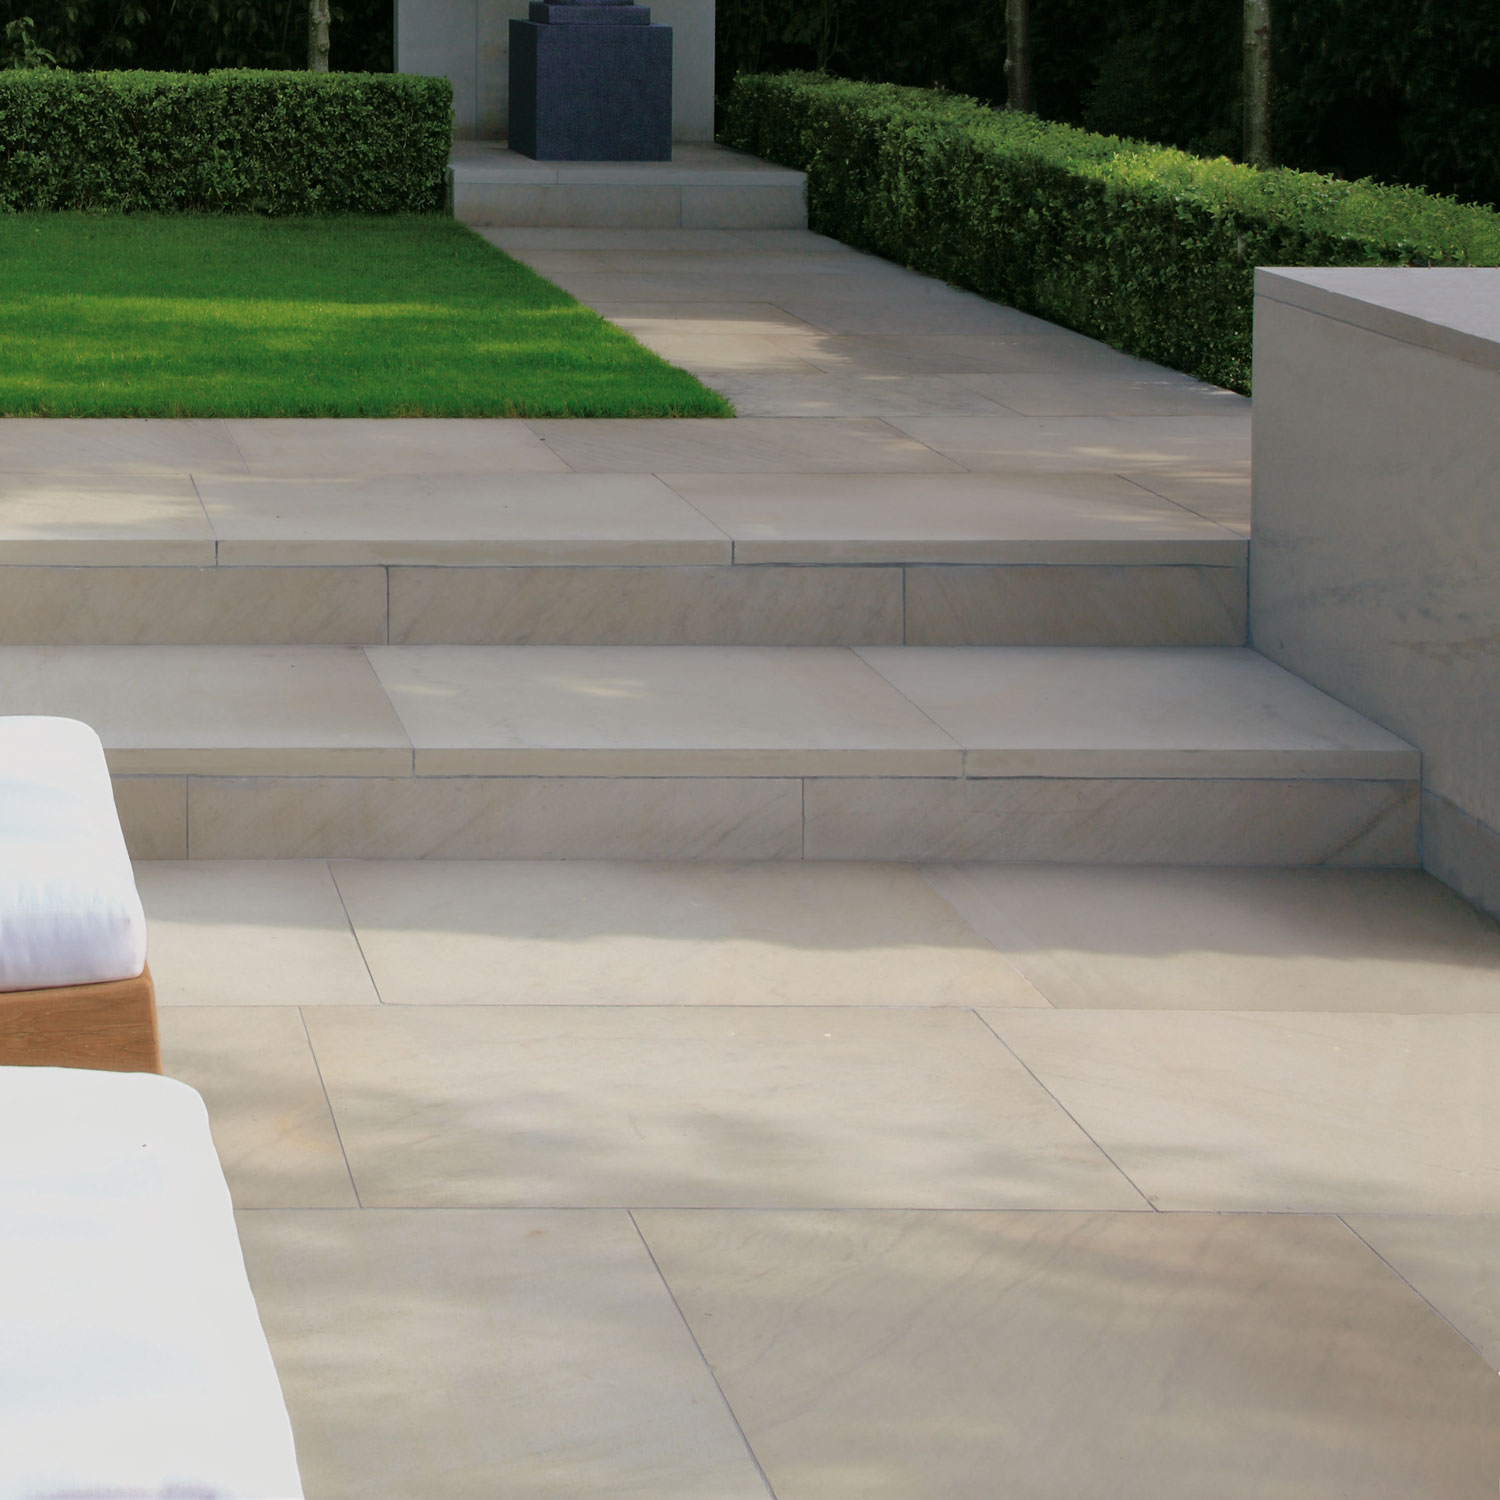 Cash Pool Jura Revamping Your Home With Patio Slabs Yonohomedesign